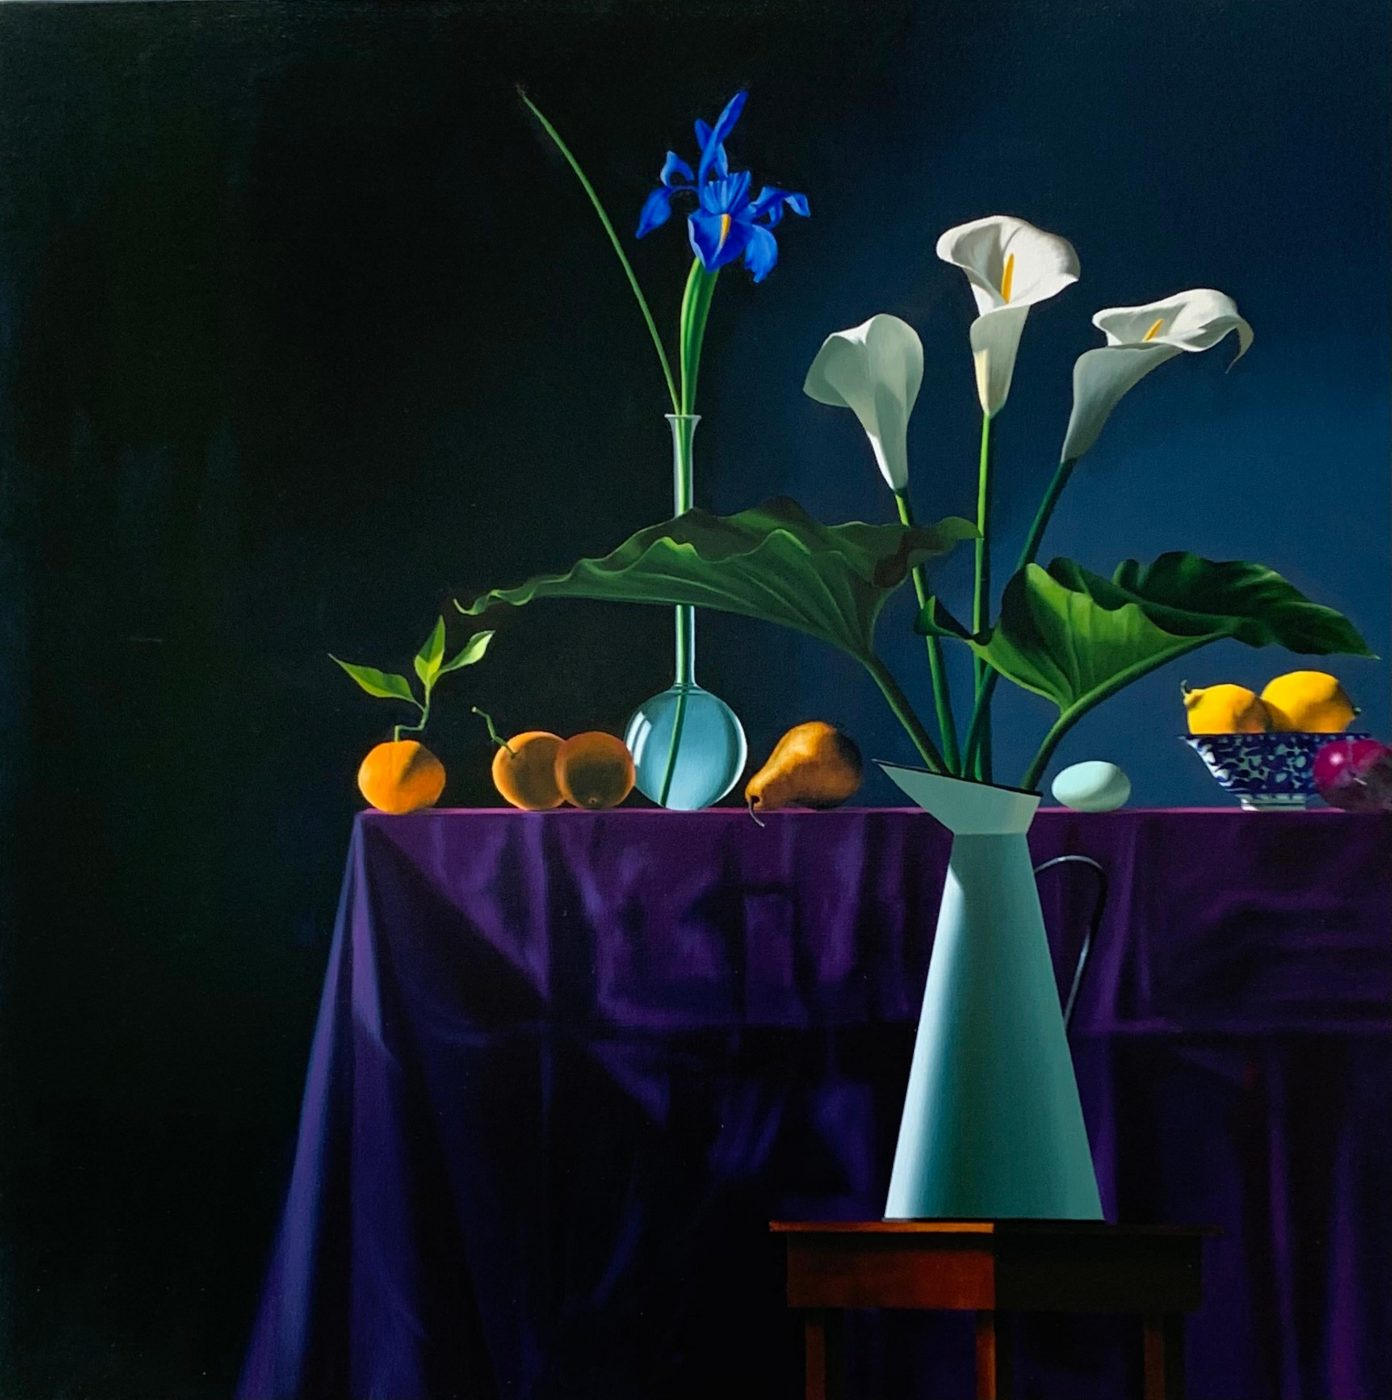 Still Life with Calla Lilies in Pitcher, 2020, by Bruce Cohen